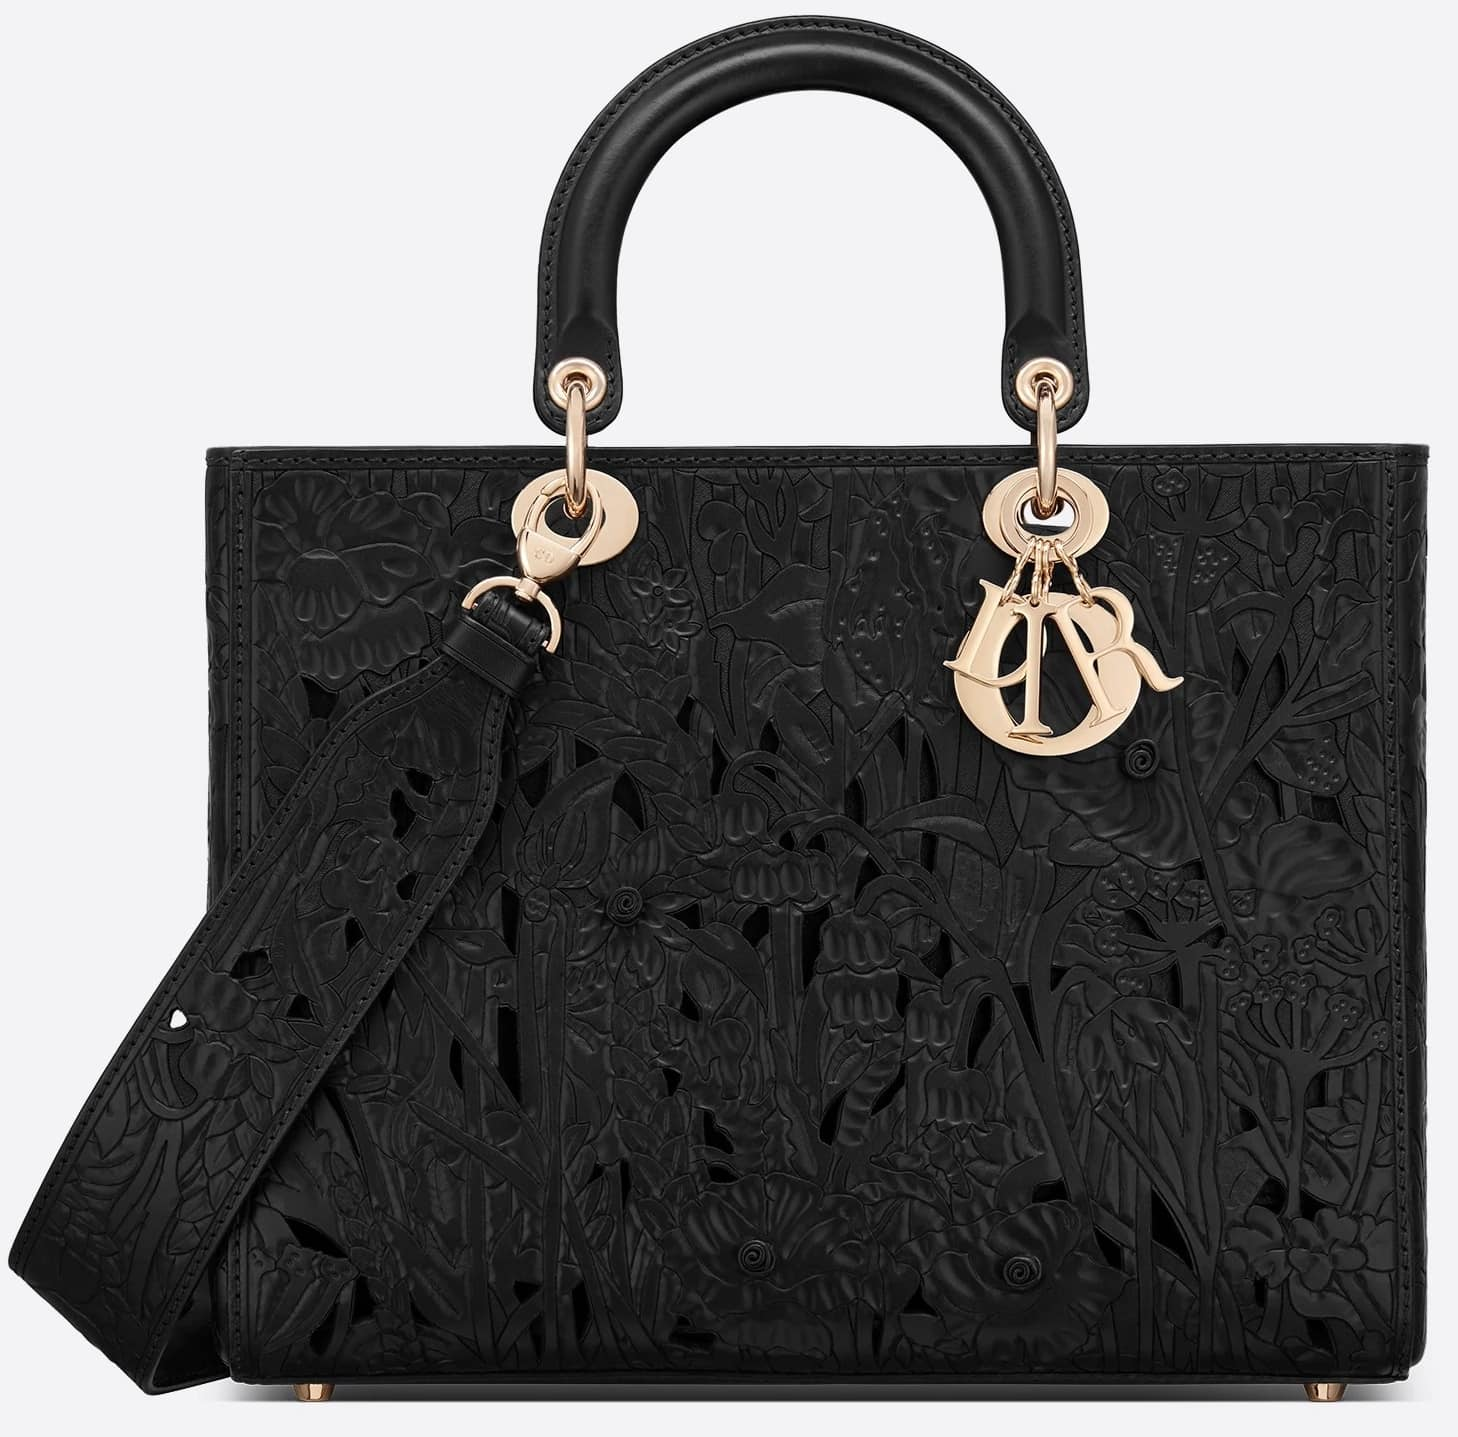 One of the most expensive Christian Dior bags, this black hand-embossed calfskin Lady Dior bag retails for $8,000